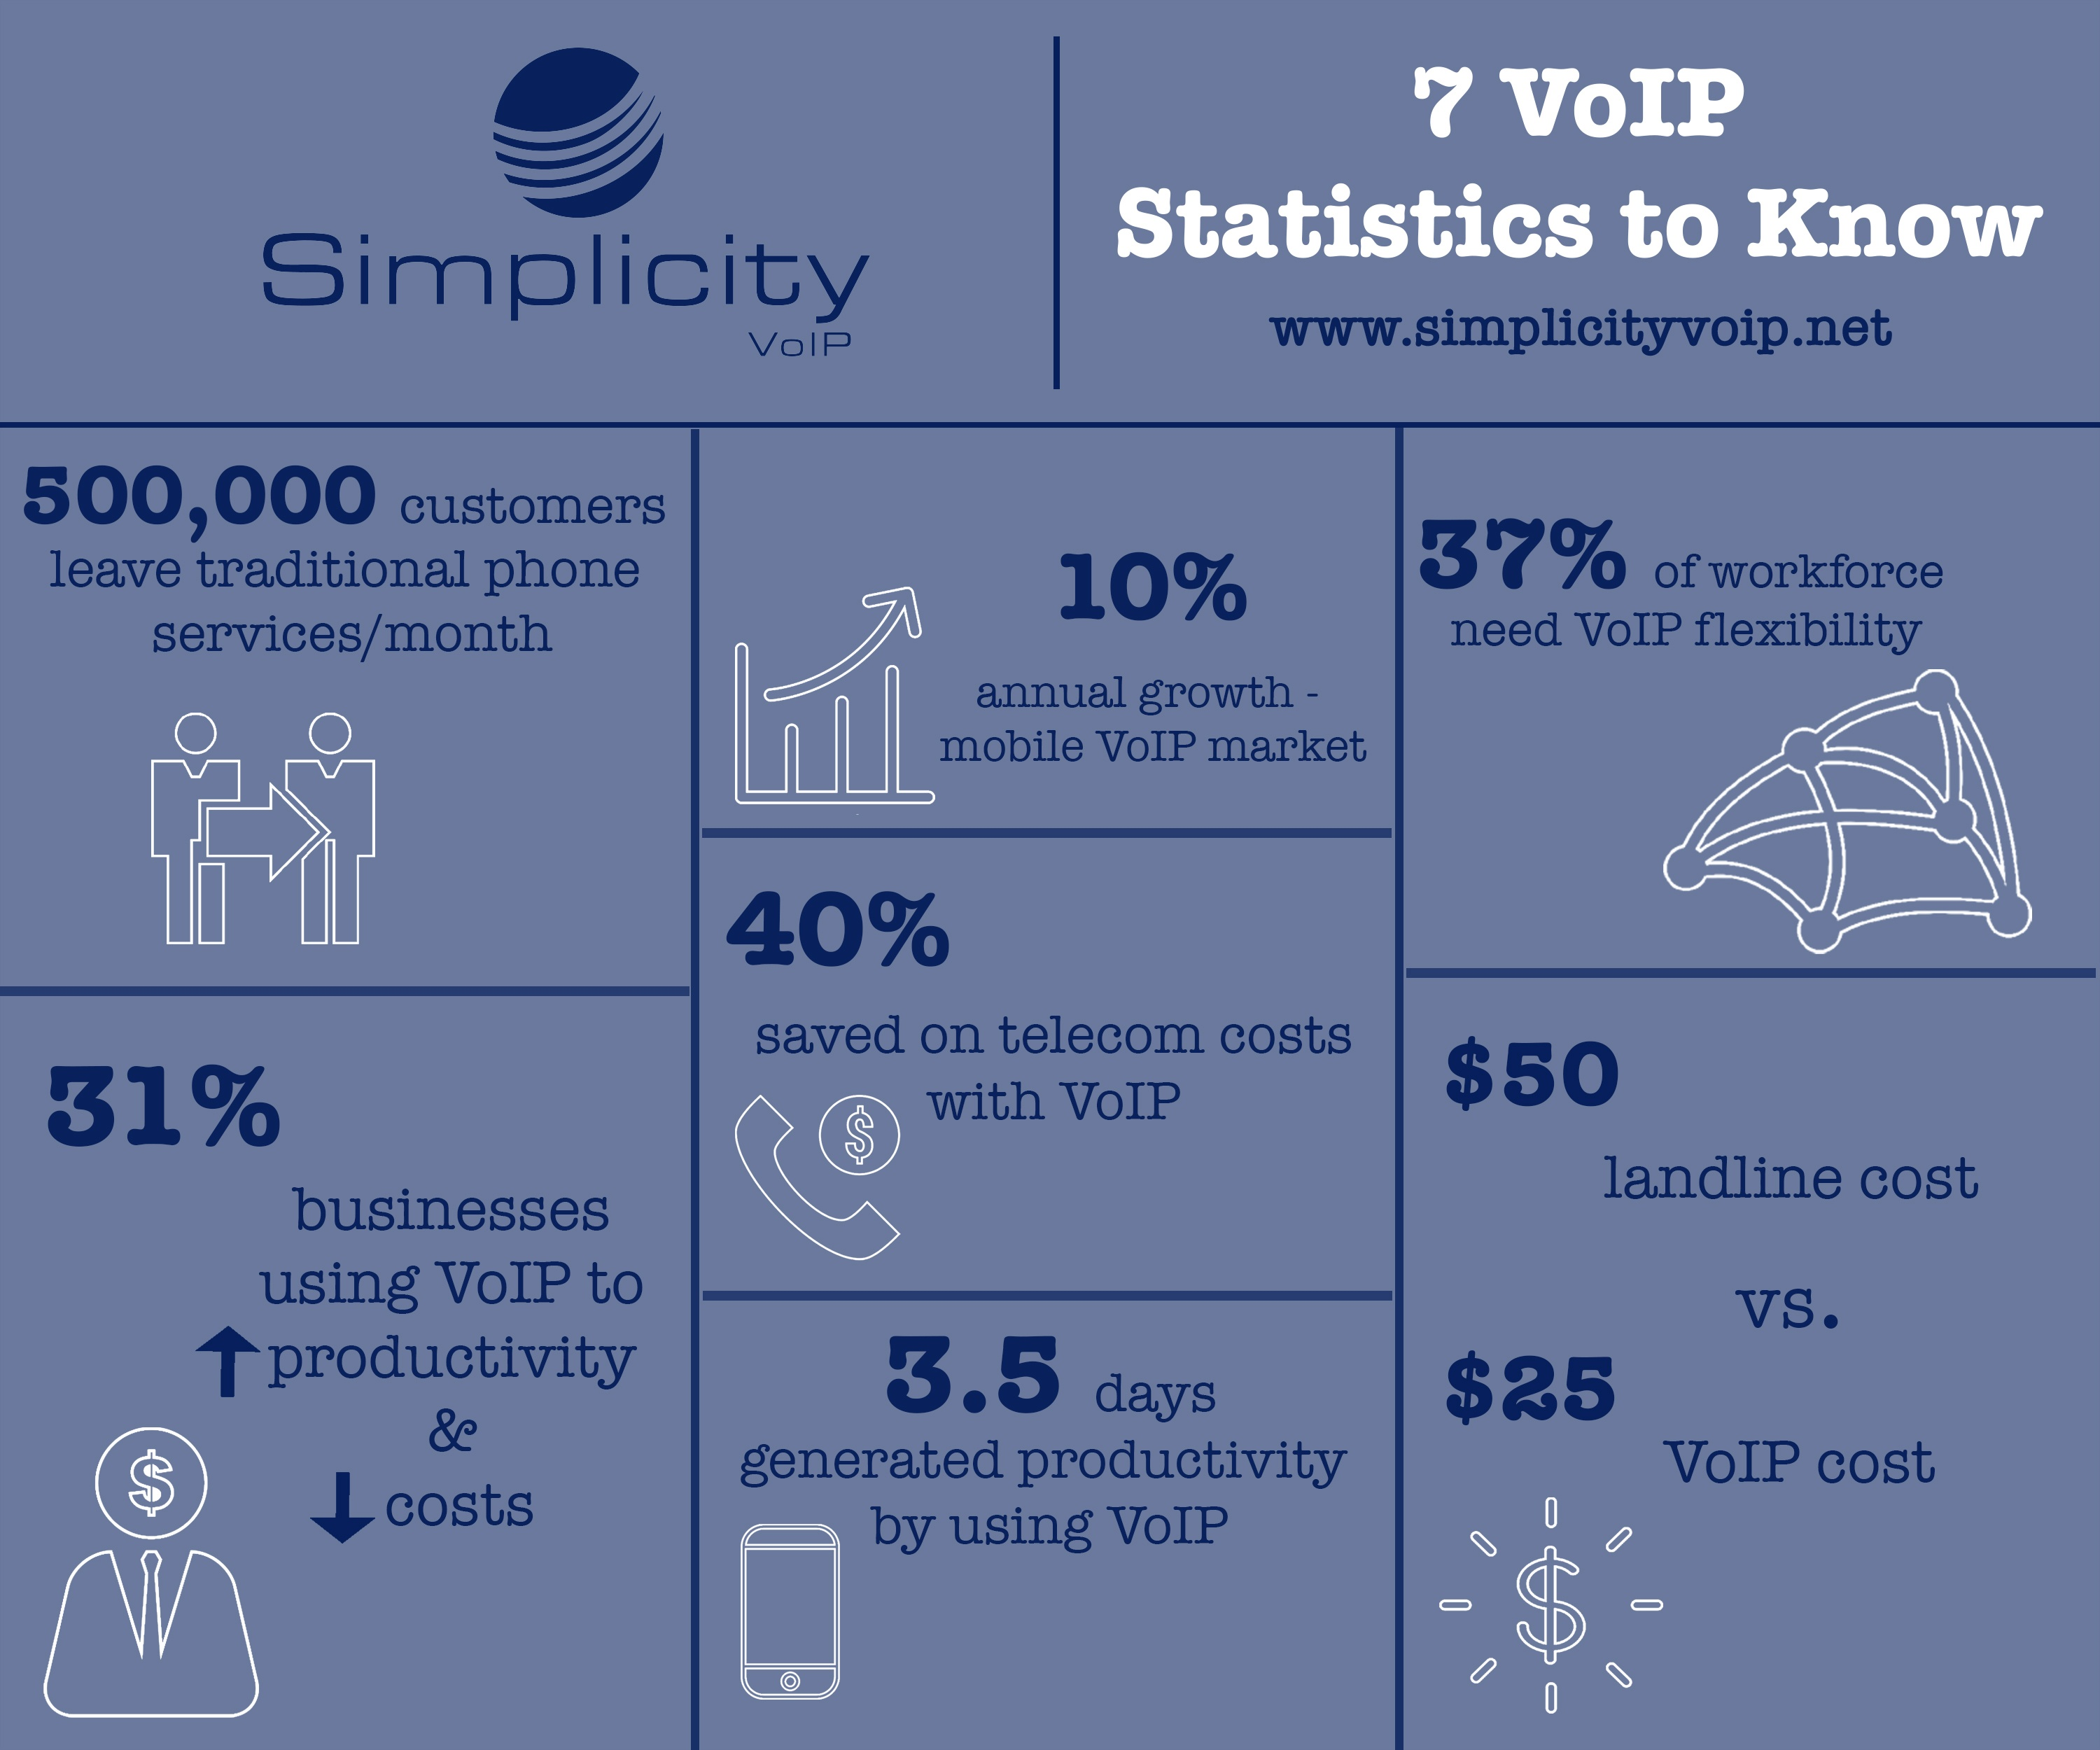 7 VoIP Statistics to Know